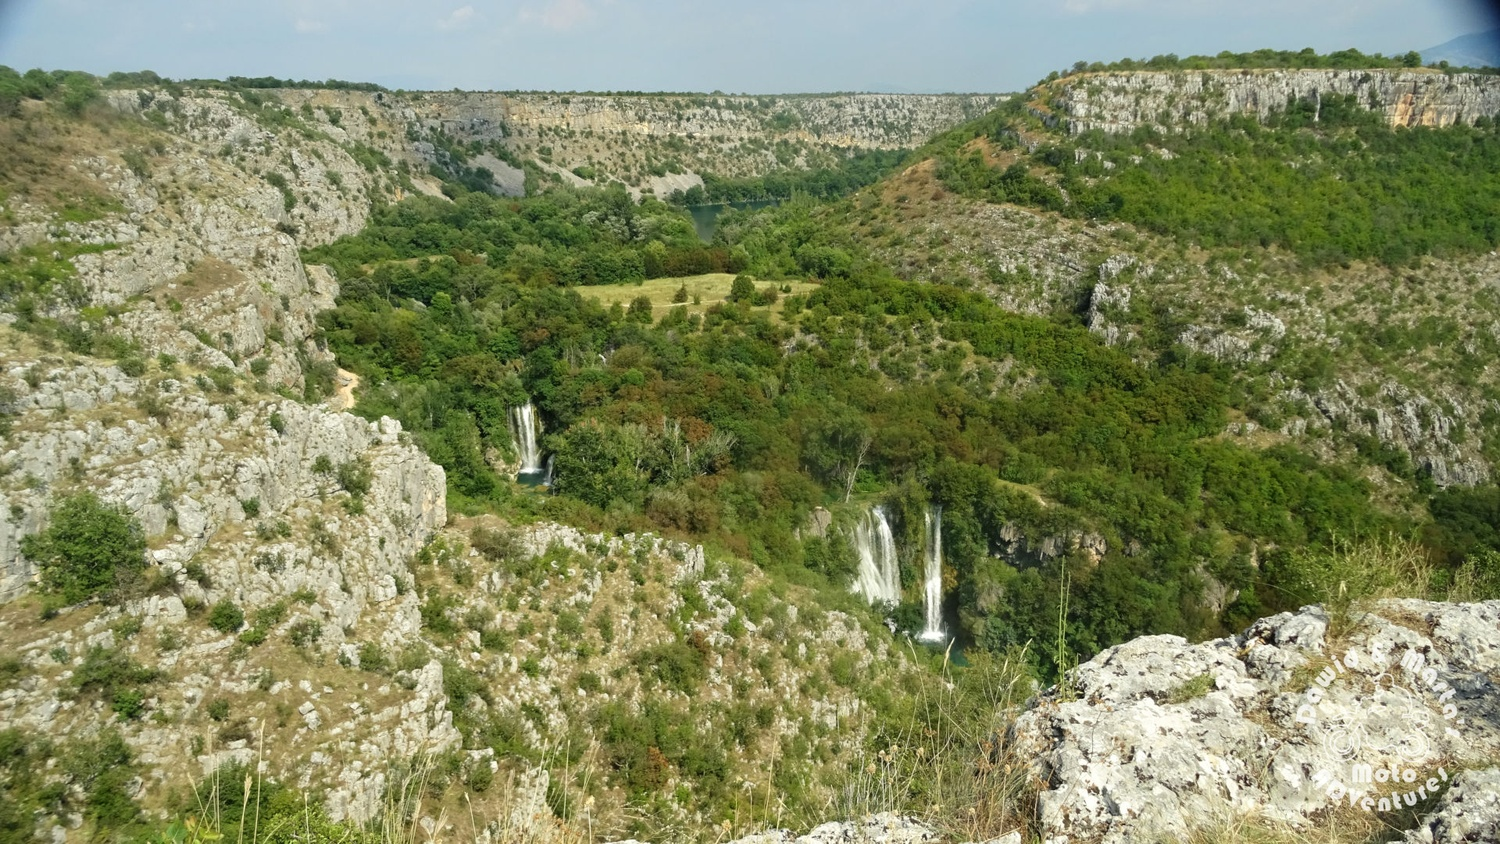 Waterfalls seen from the Krk River canyon top, inland Croatia